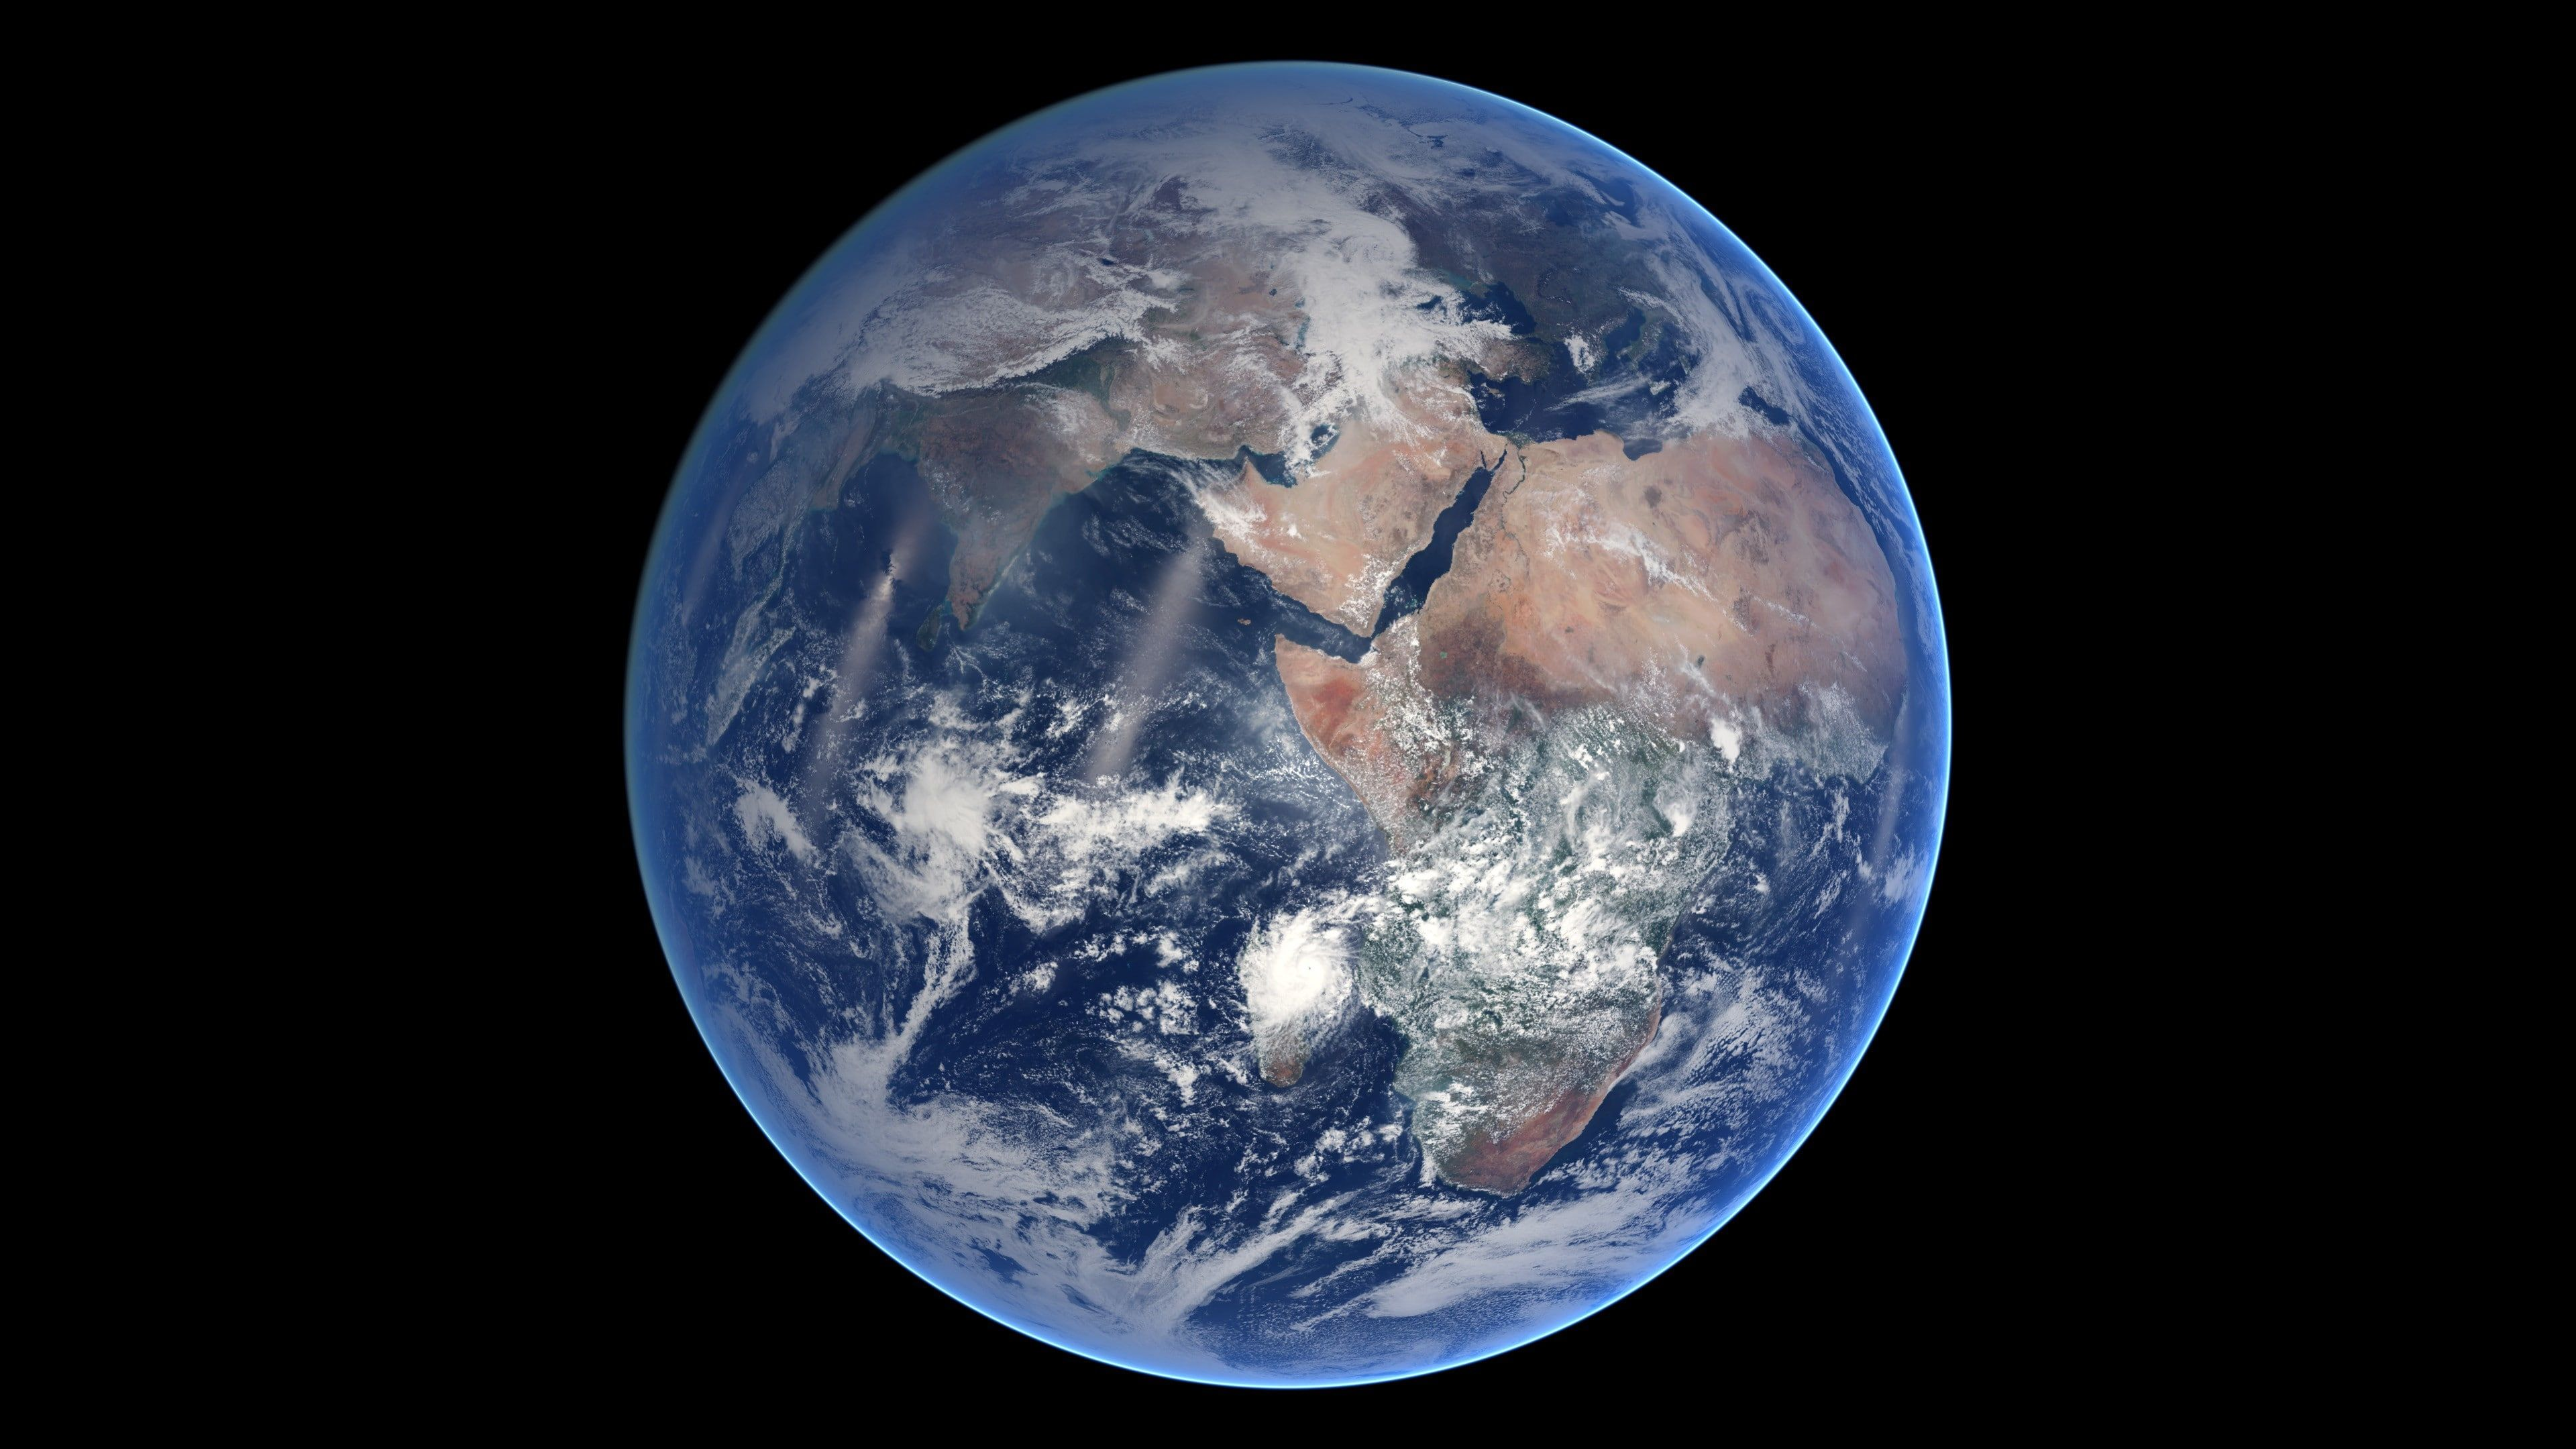 Earth Space Planet Blue Marble Nasa 4k Wallpaper Hdwallpaper